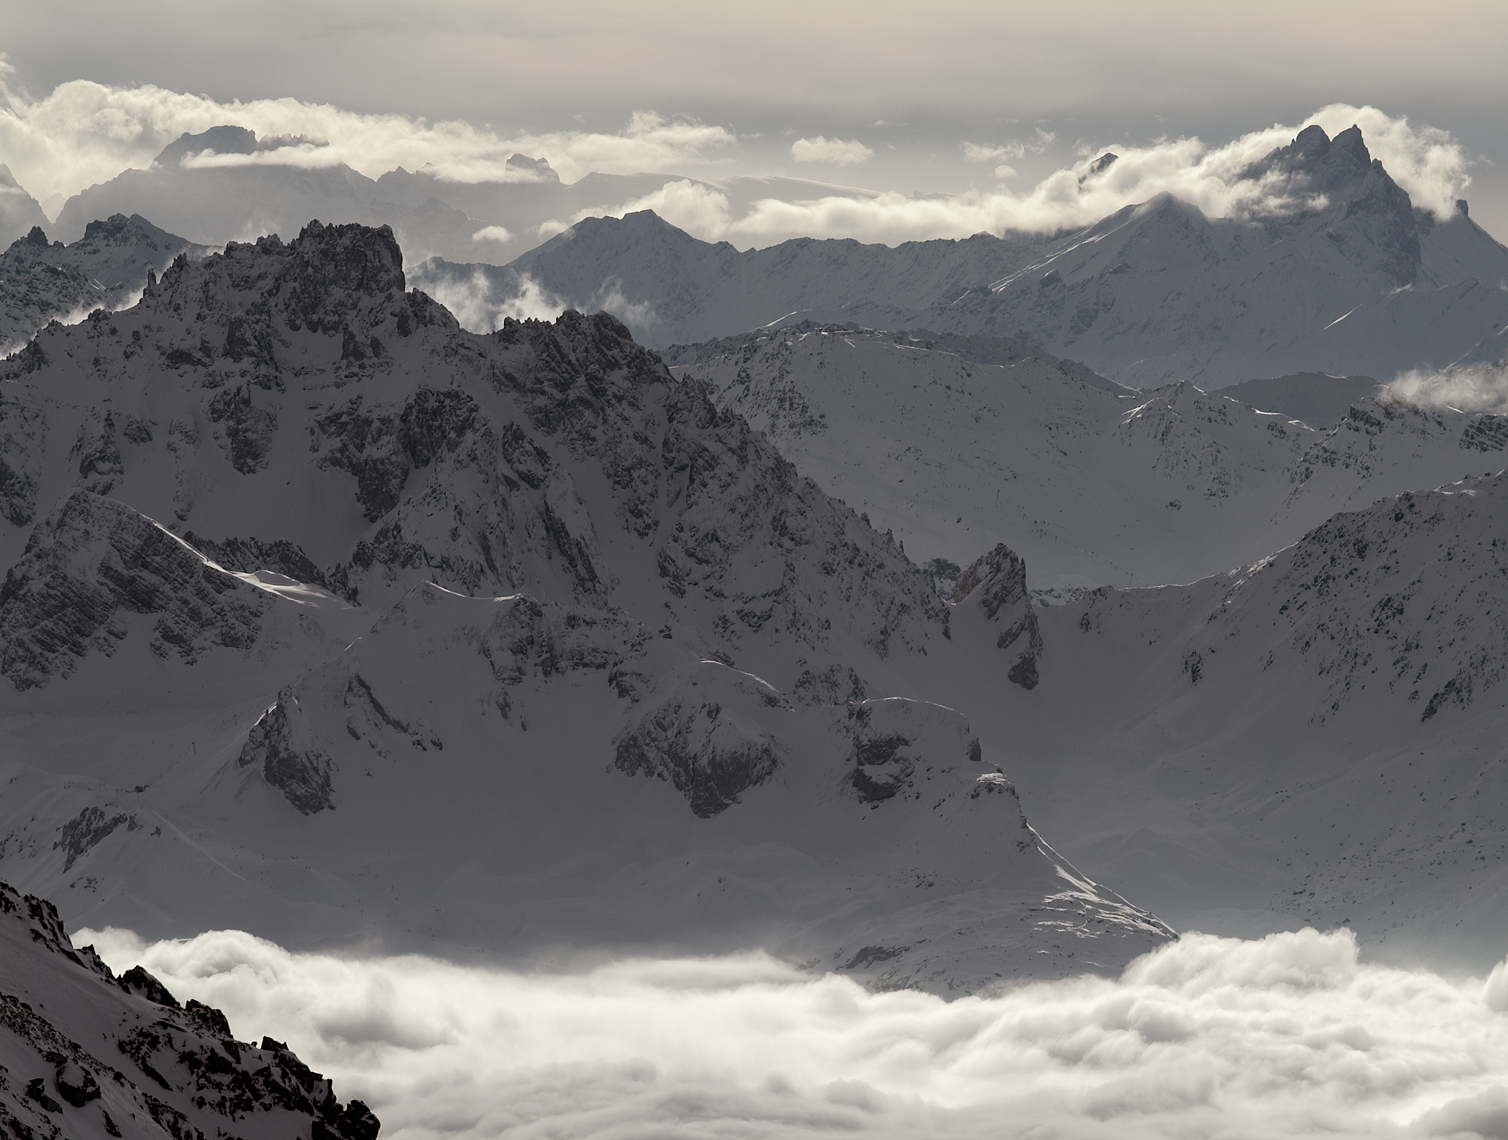 Jon Wyatt Photography - Snow-covered mountains surrounded by cloud in La Plagne backcountry, France